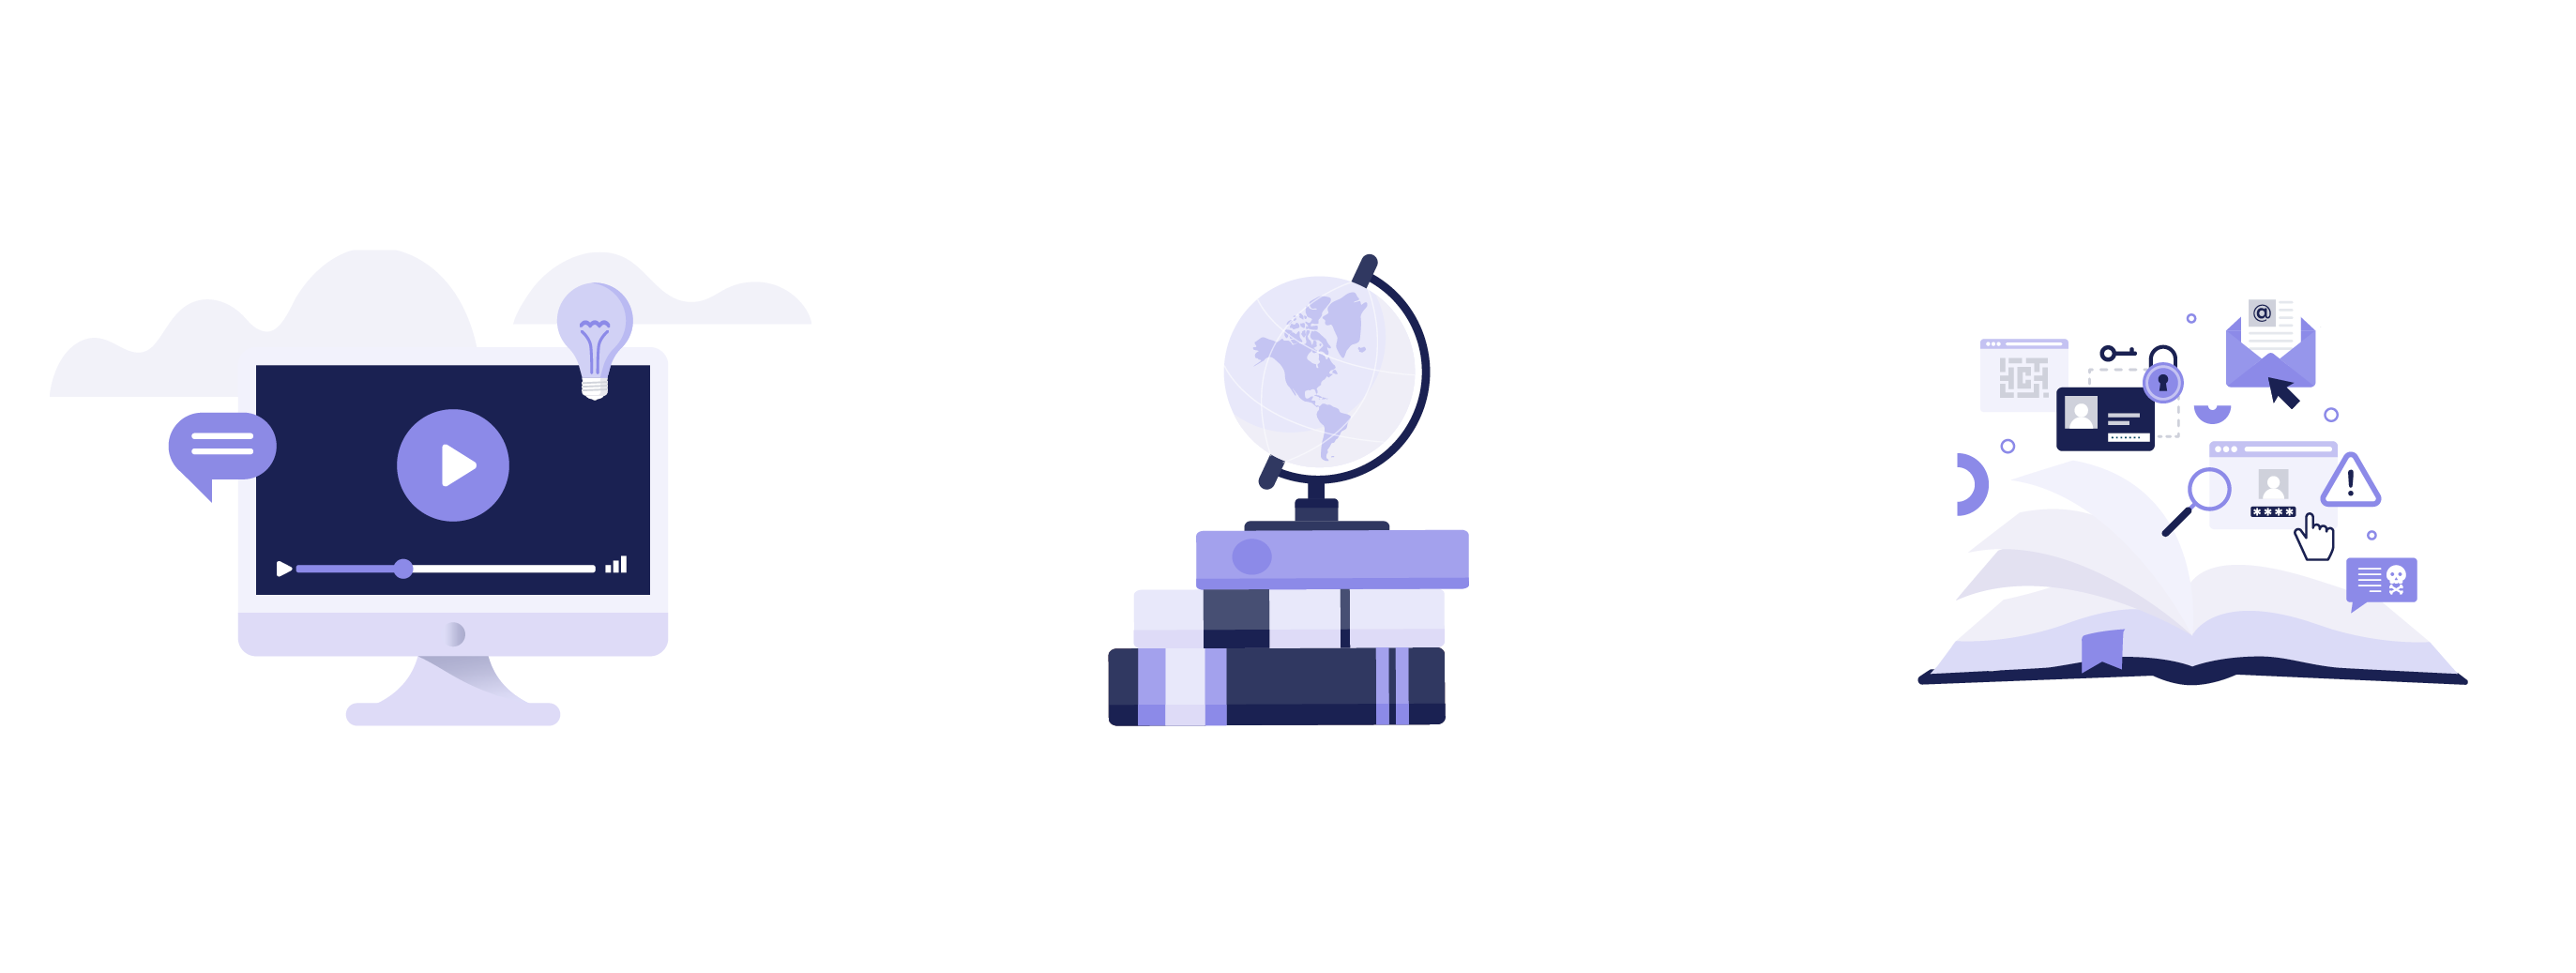 Cyber Insurance Academy icons